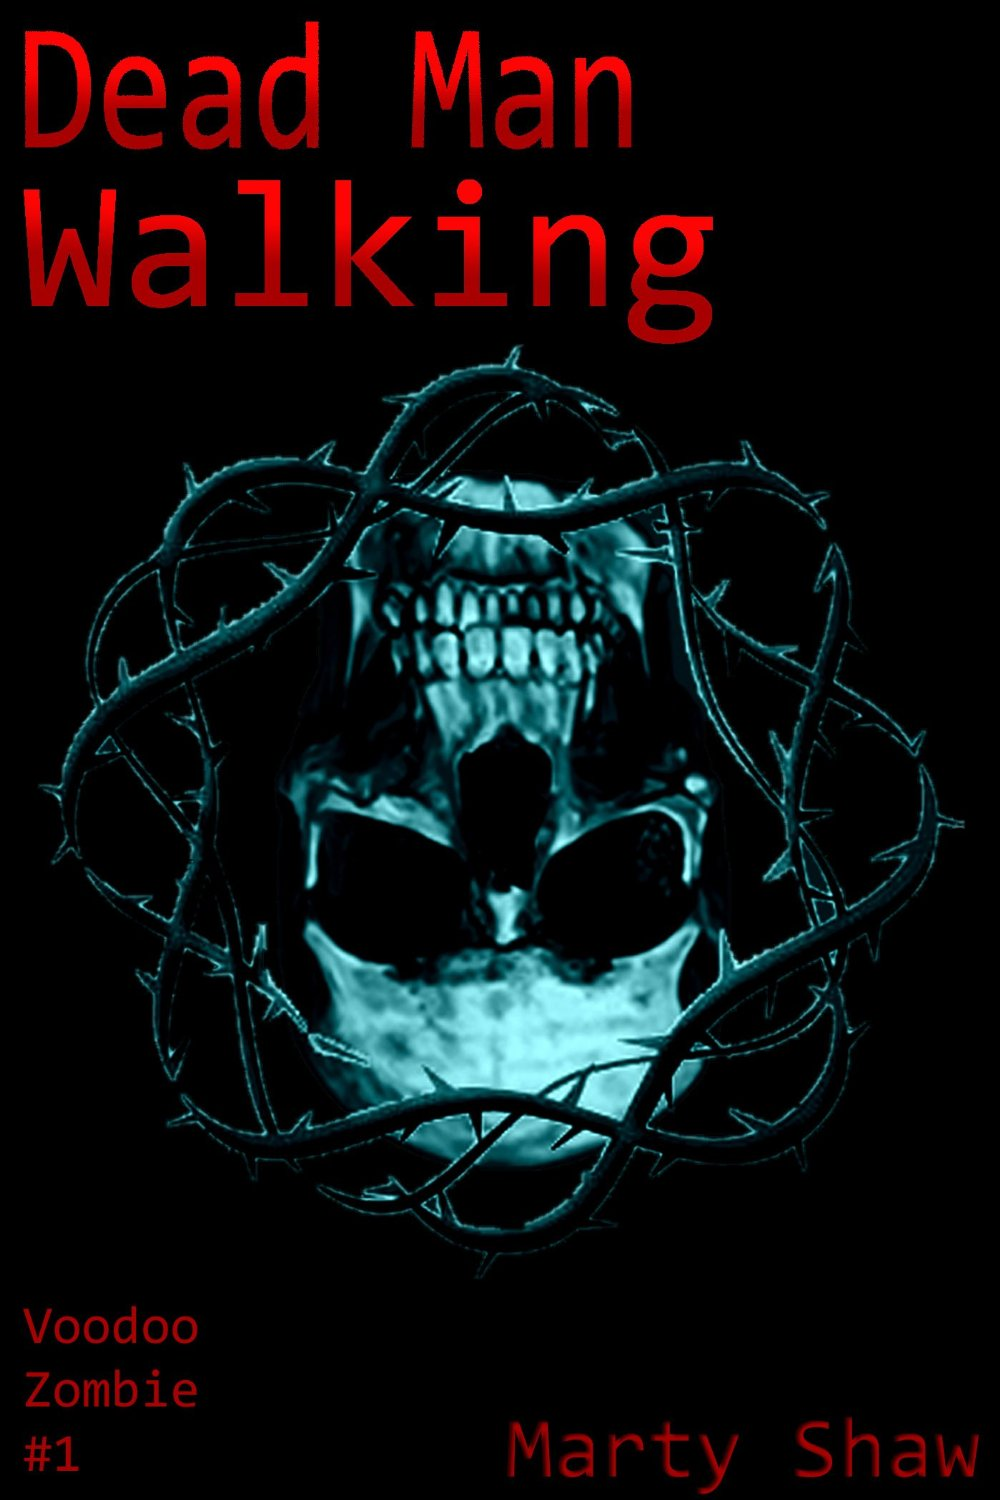 an analysis of the term dead man walking Film analysis of dead man walking for many years, the death penalty has been a punishment for severe crimes  more about dead man walking: the death penalty essay.